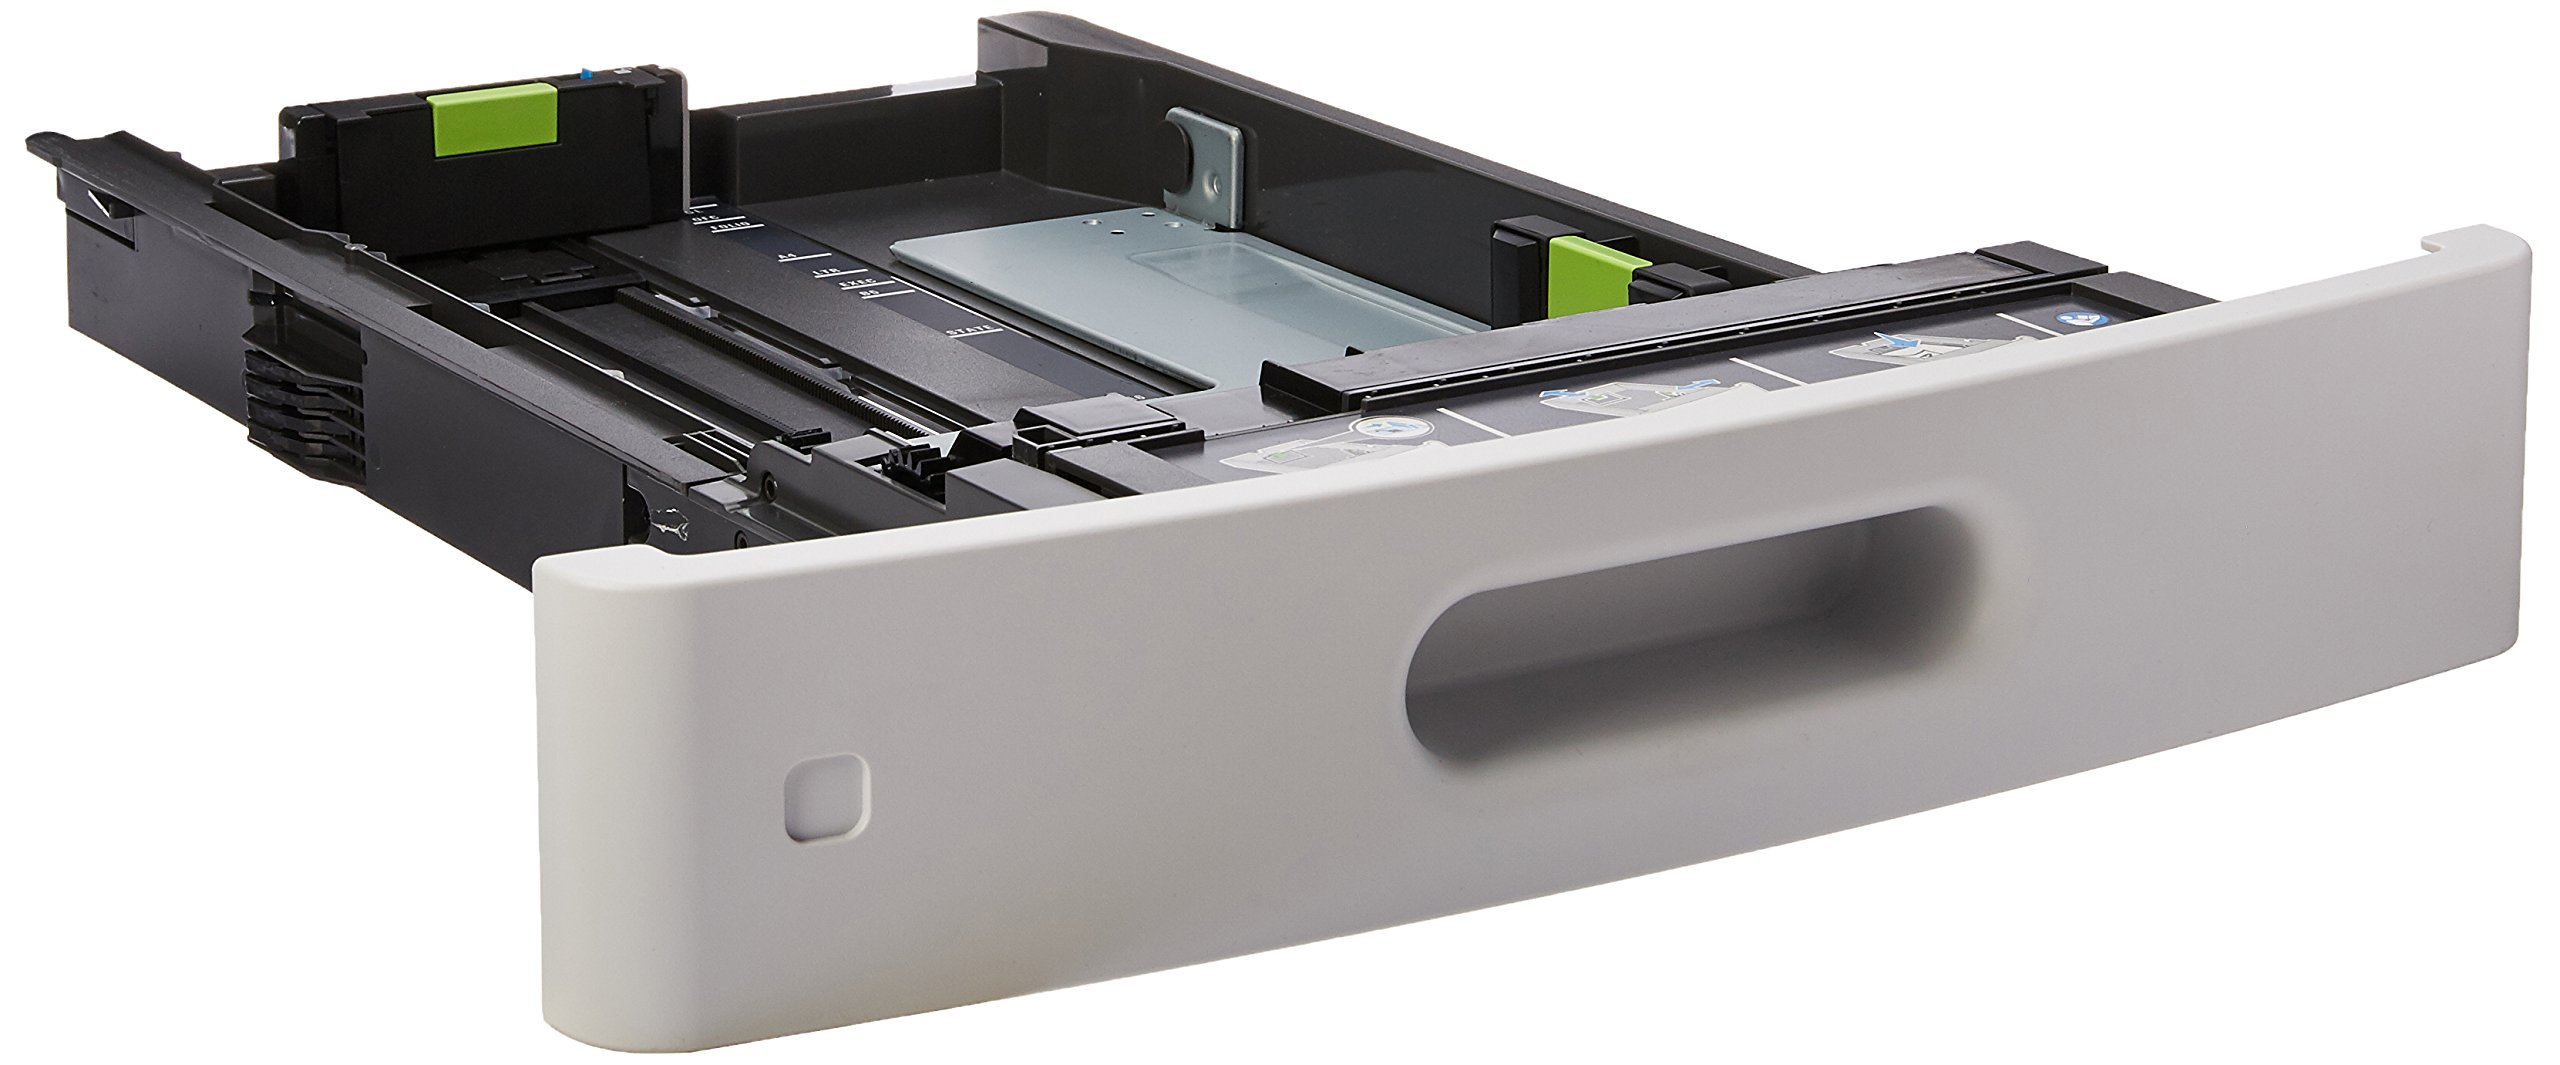 Lexmark 40G0801 Wireless Printer